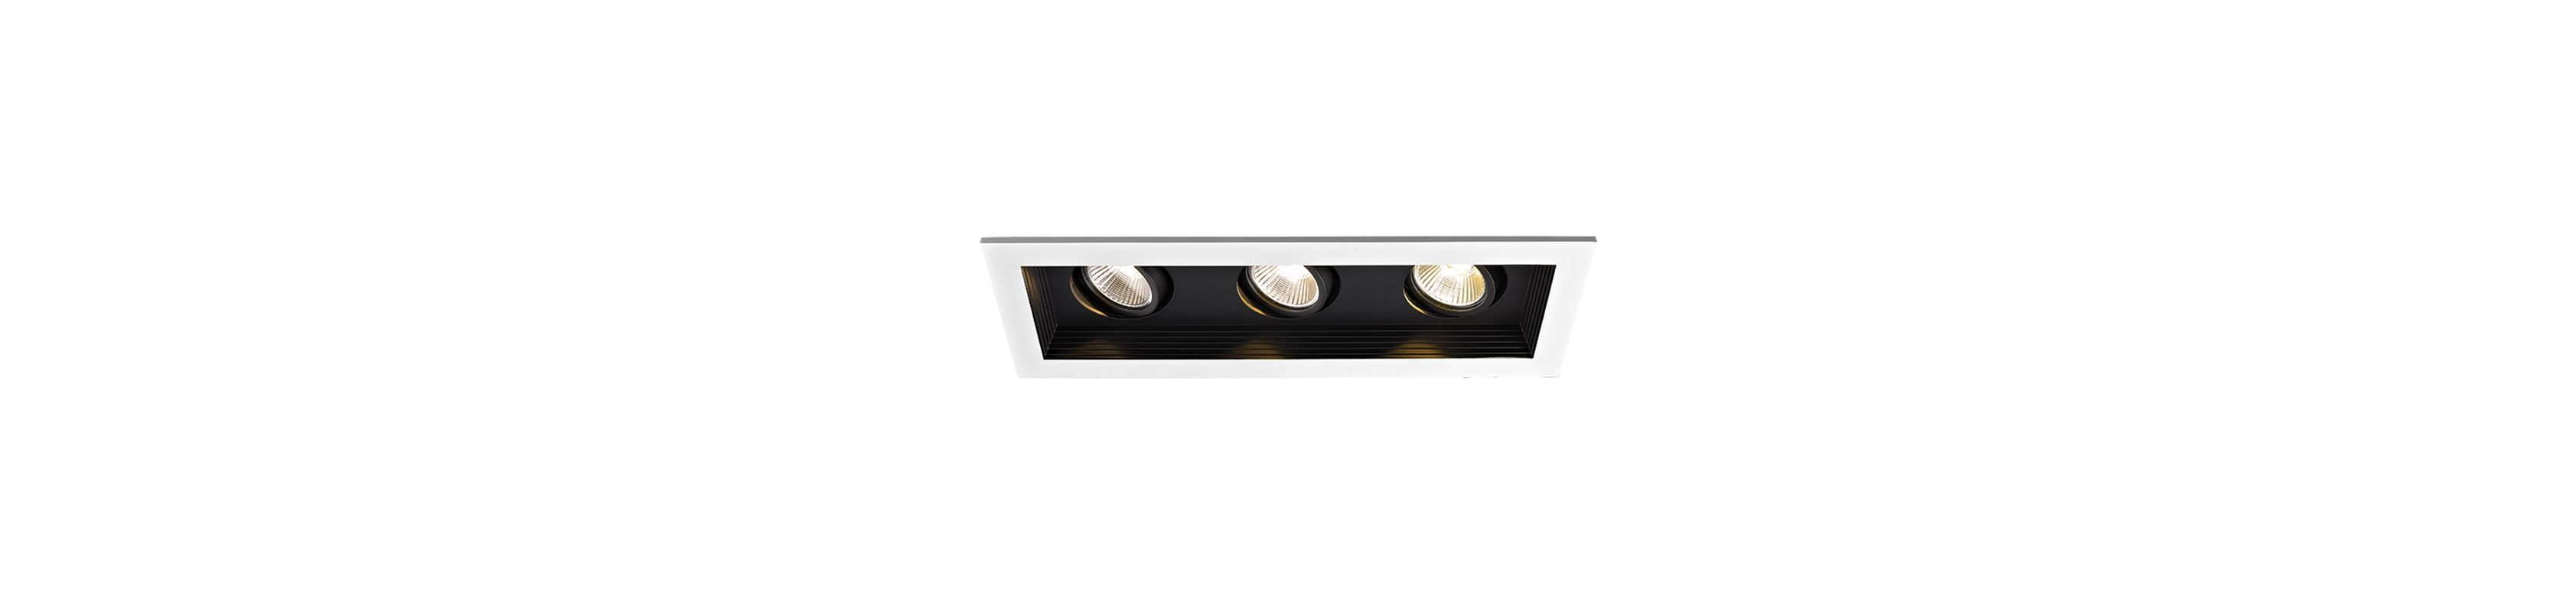 WAC Lighting MT-3LD311R-F930 Remodel 1 Light Mini LED Recessed